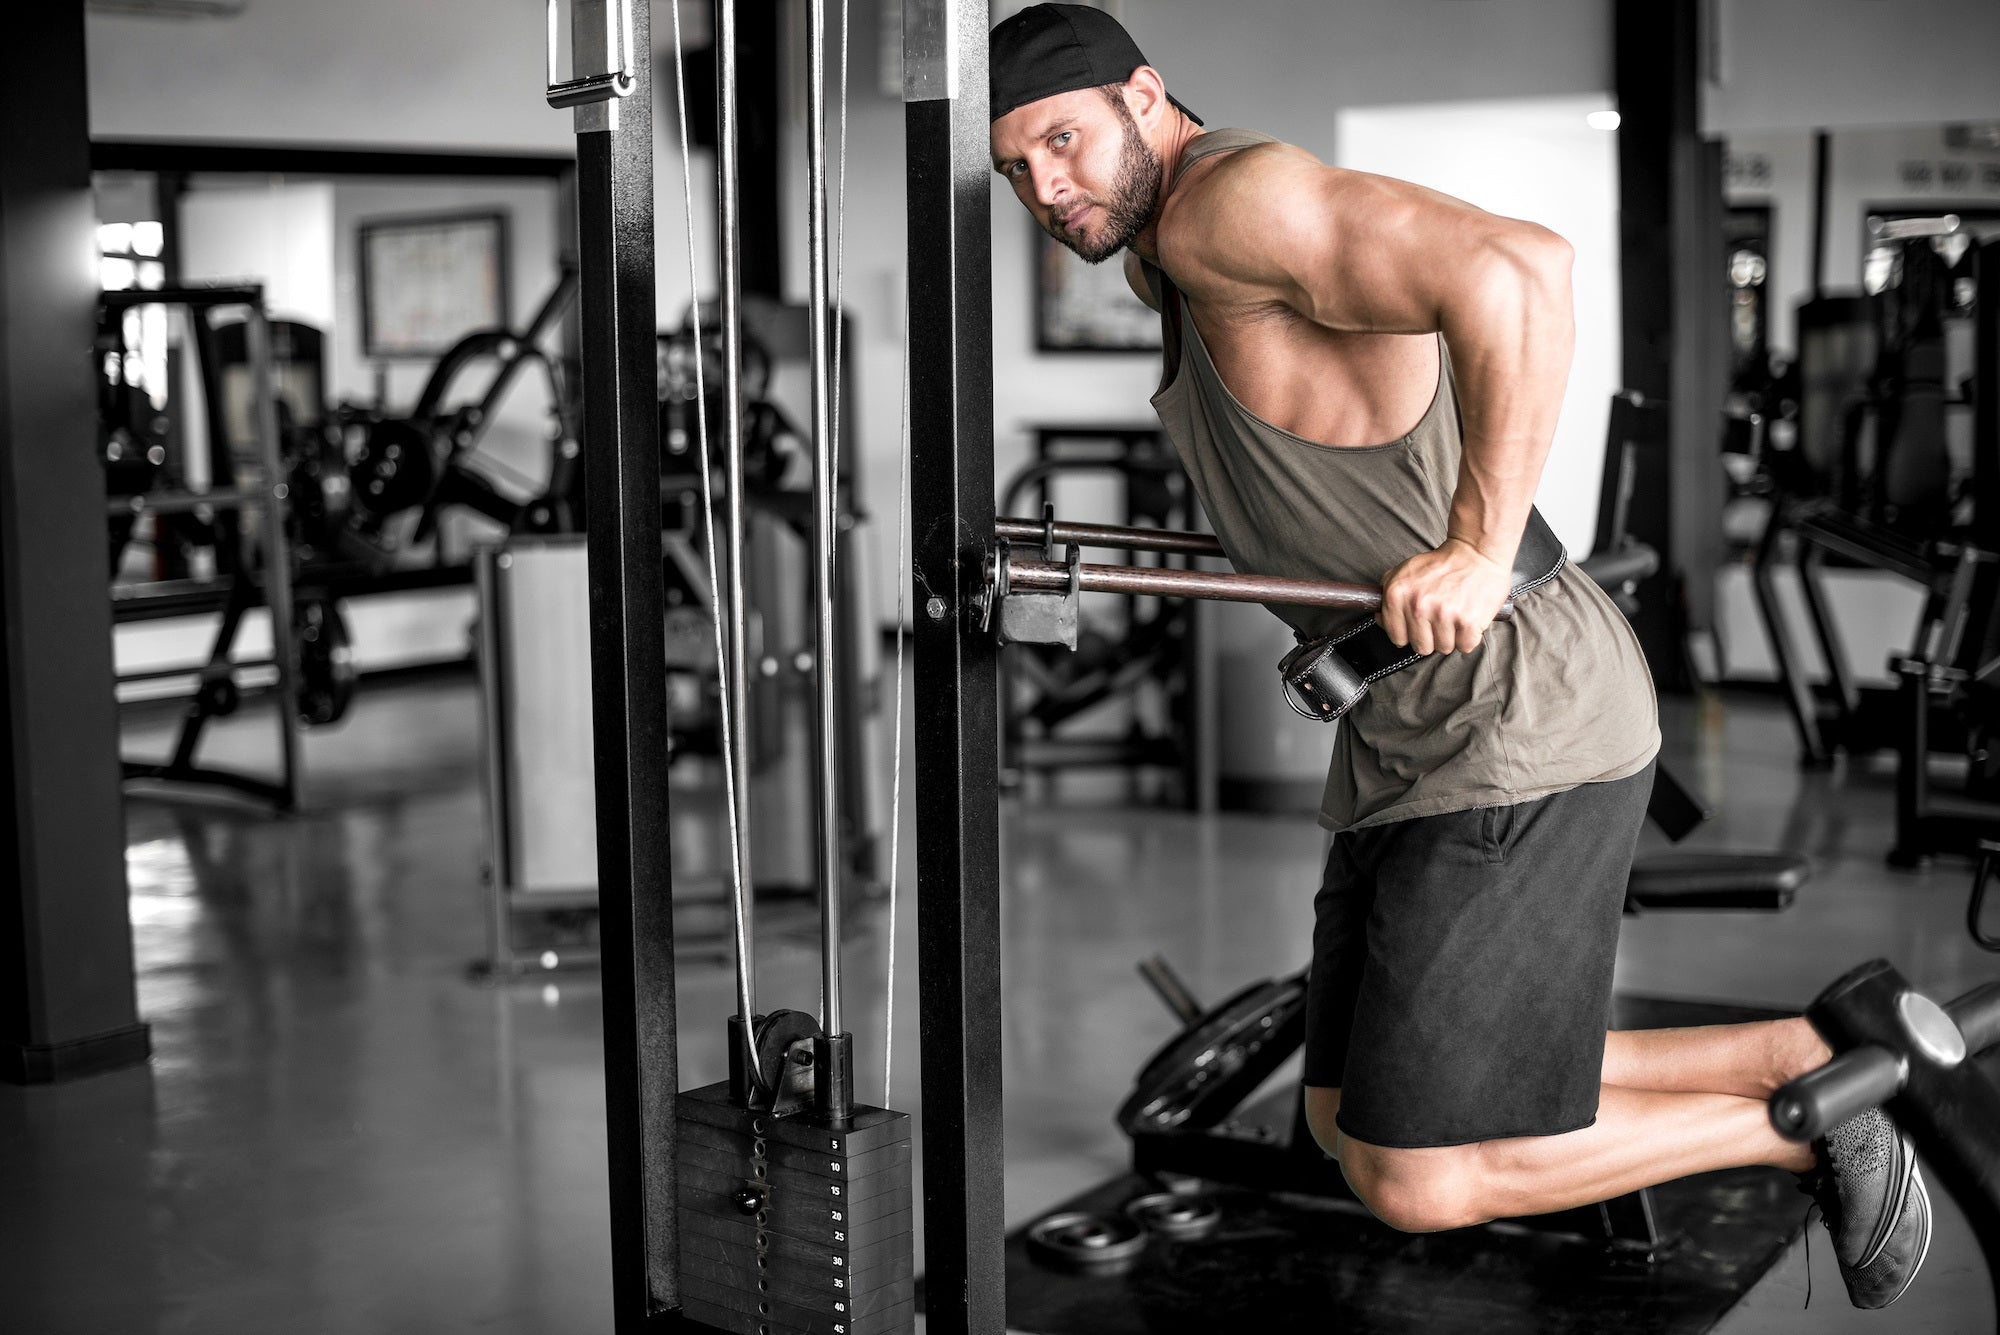 How to Do Tricep Dips to Build Arm Strength